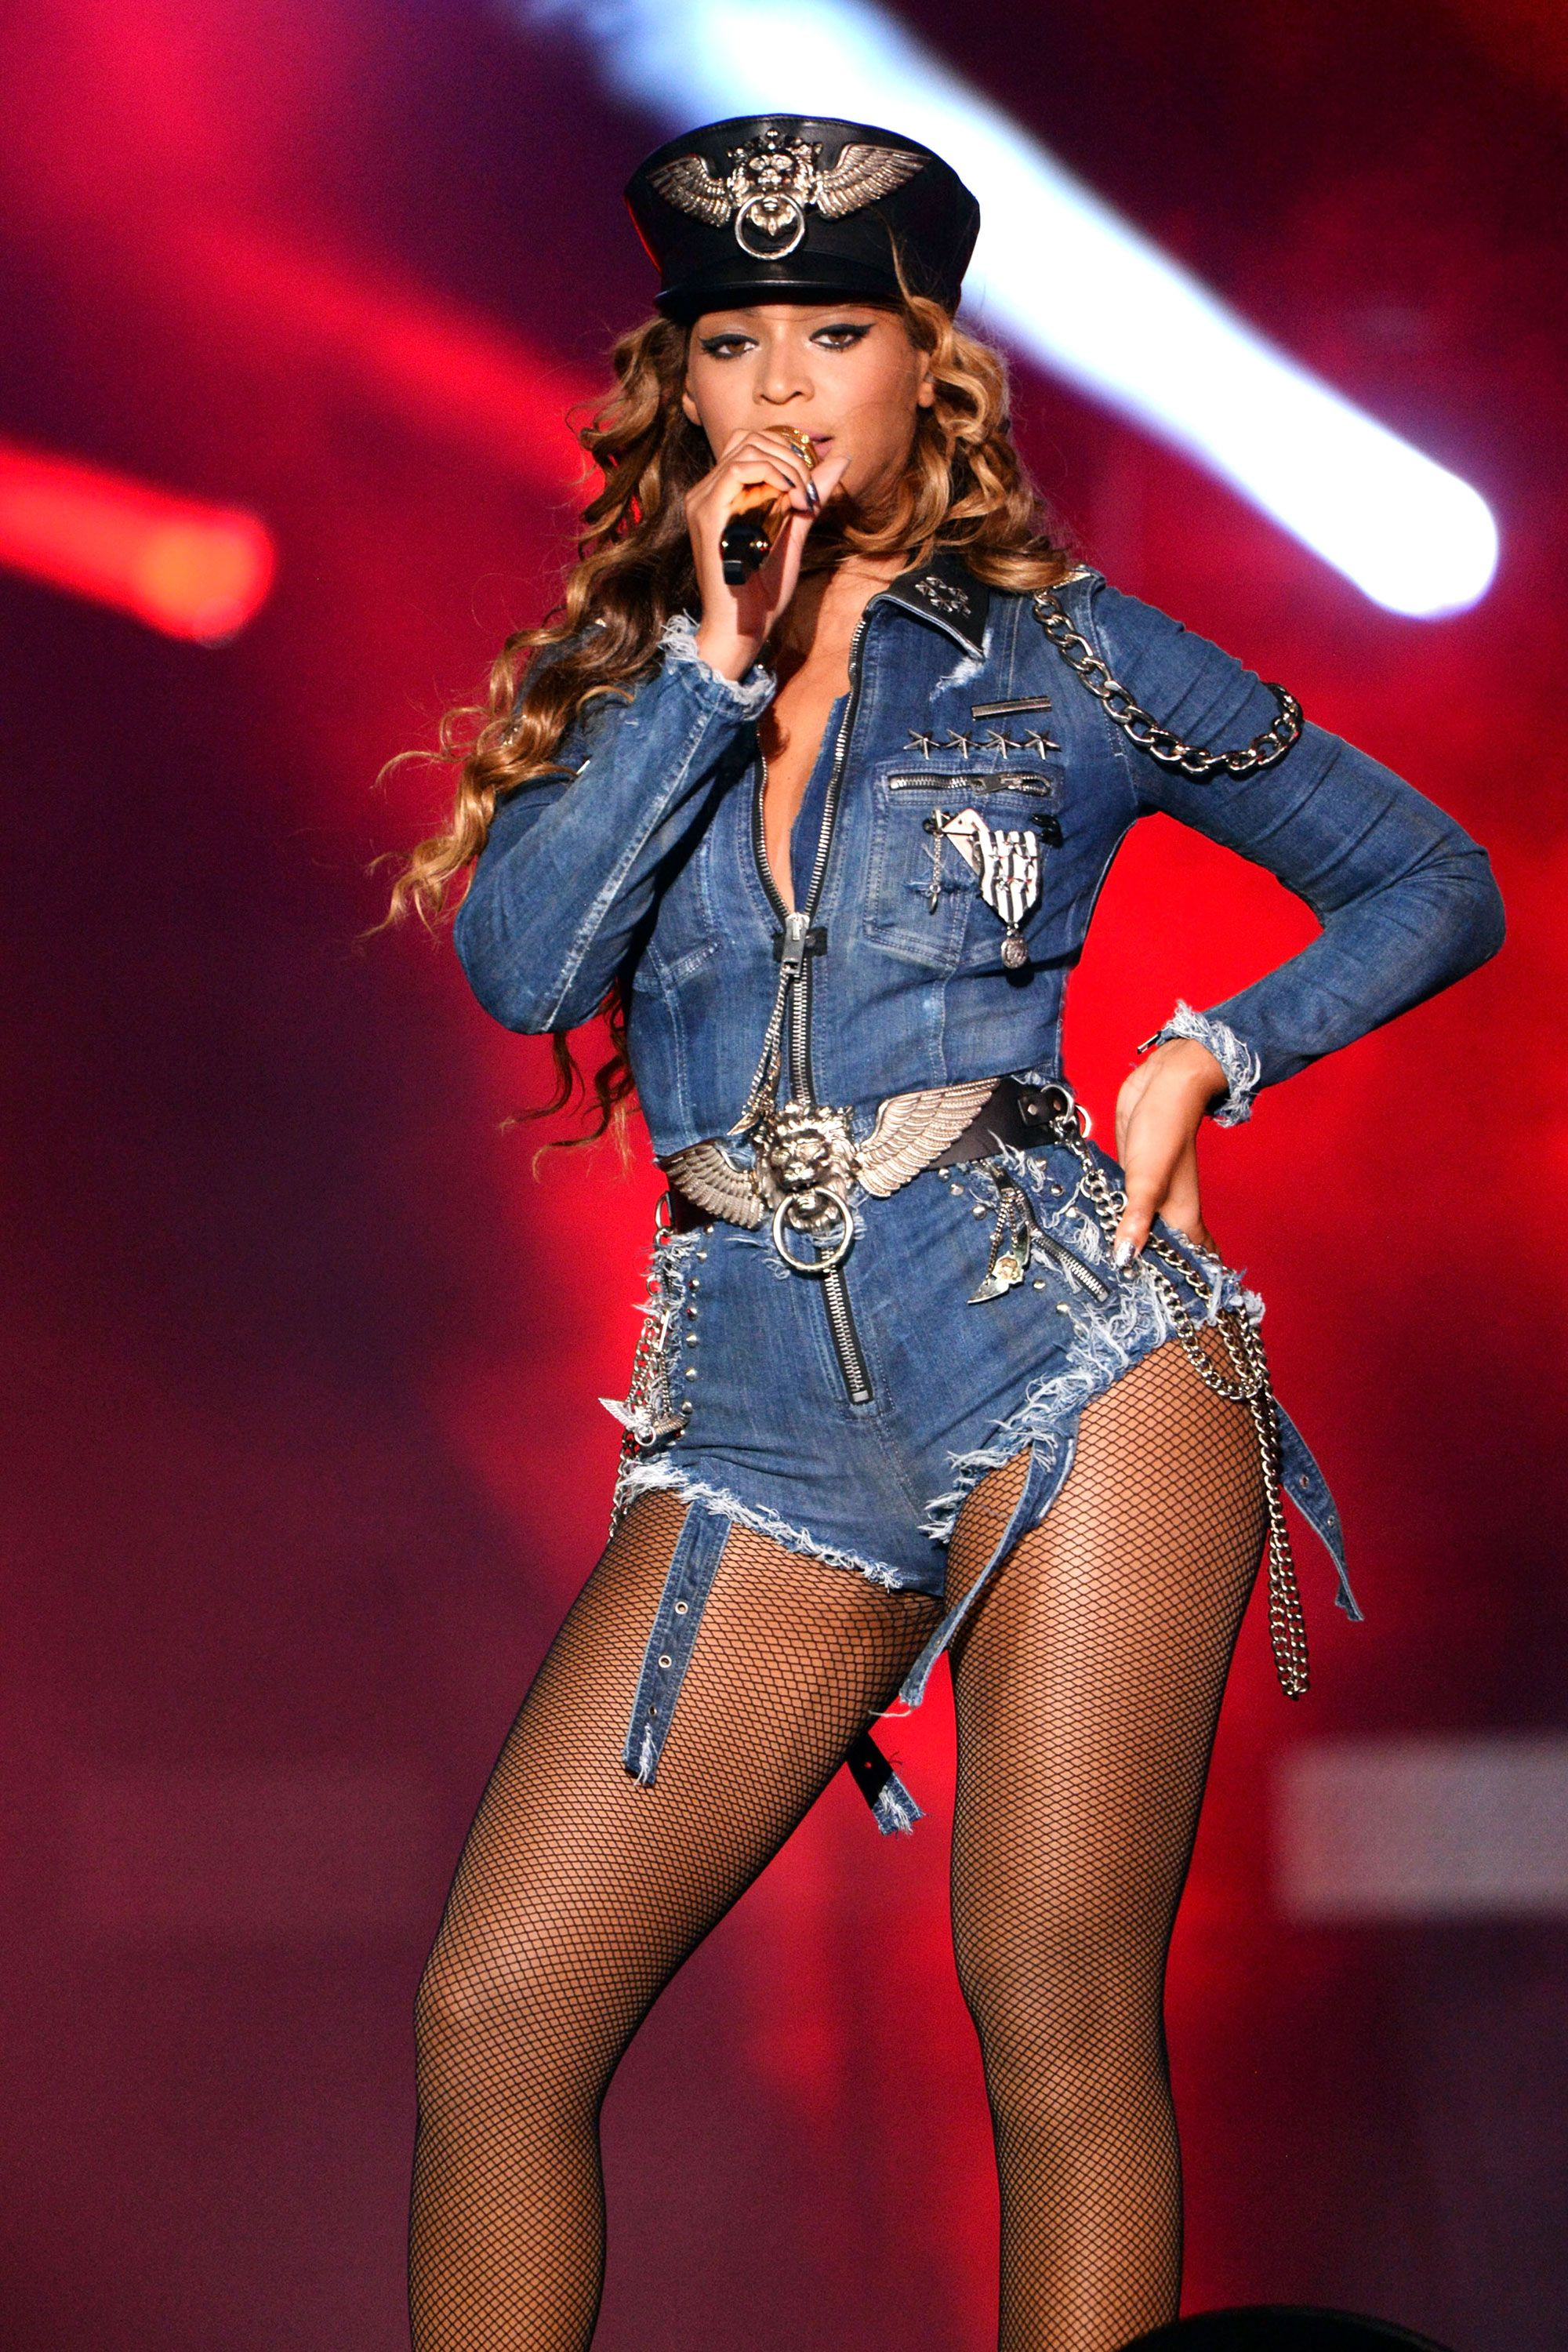 Beyonce's Best Tour Costumes | Beyonce costume and Celebrity